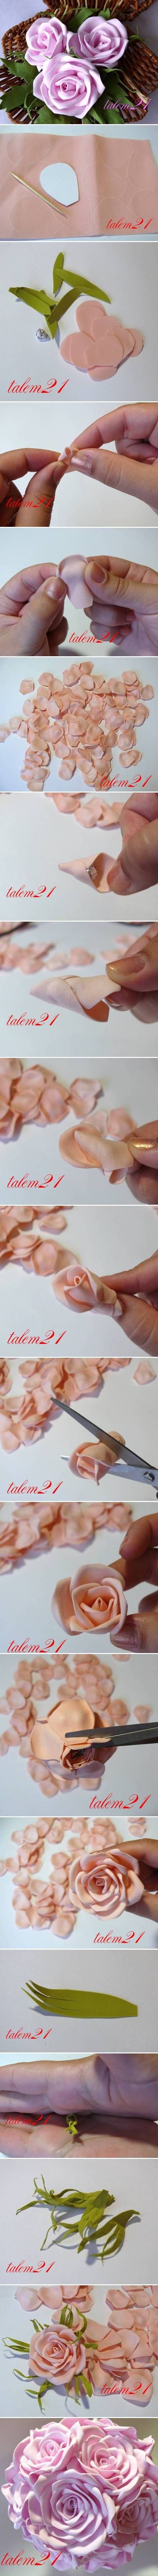 DIY Fabulous Rose